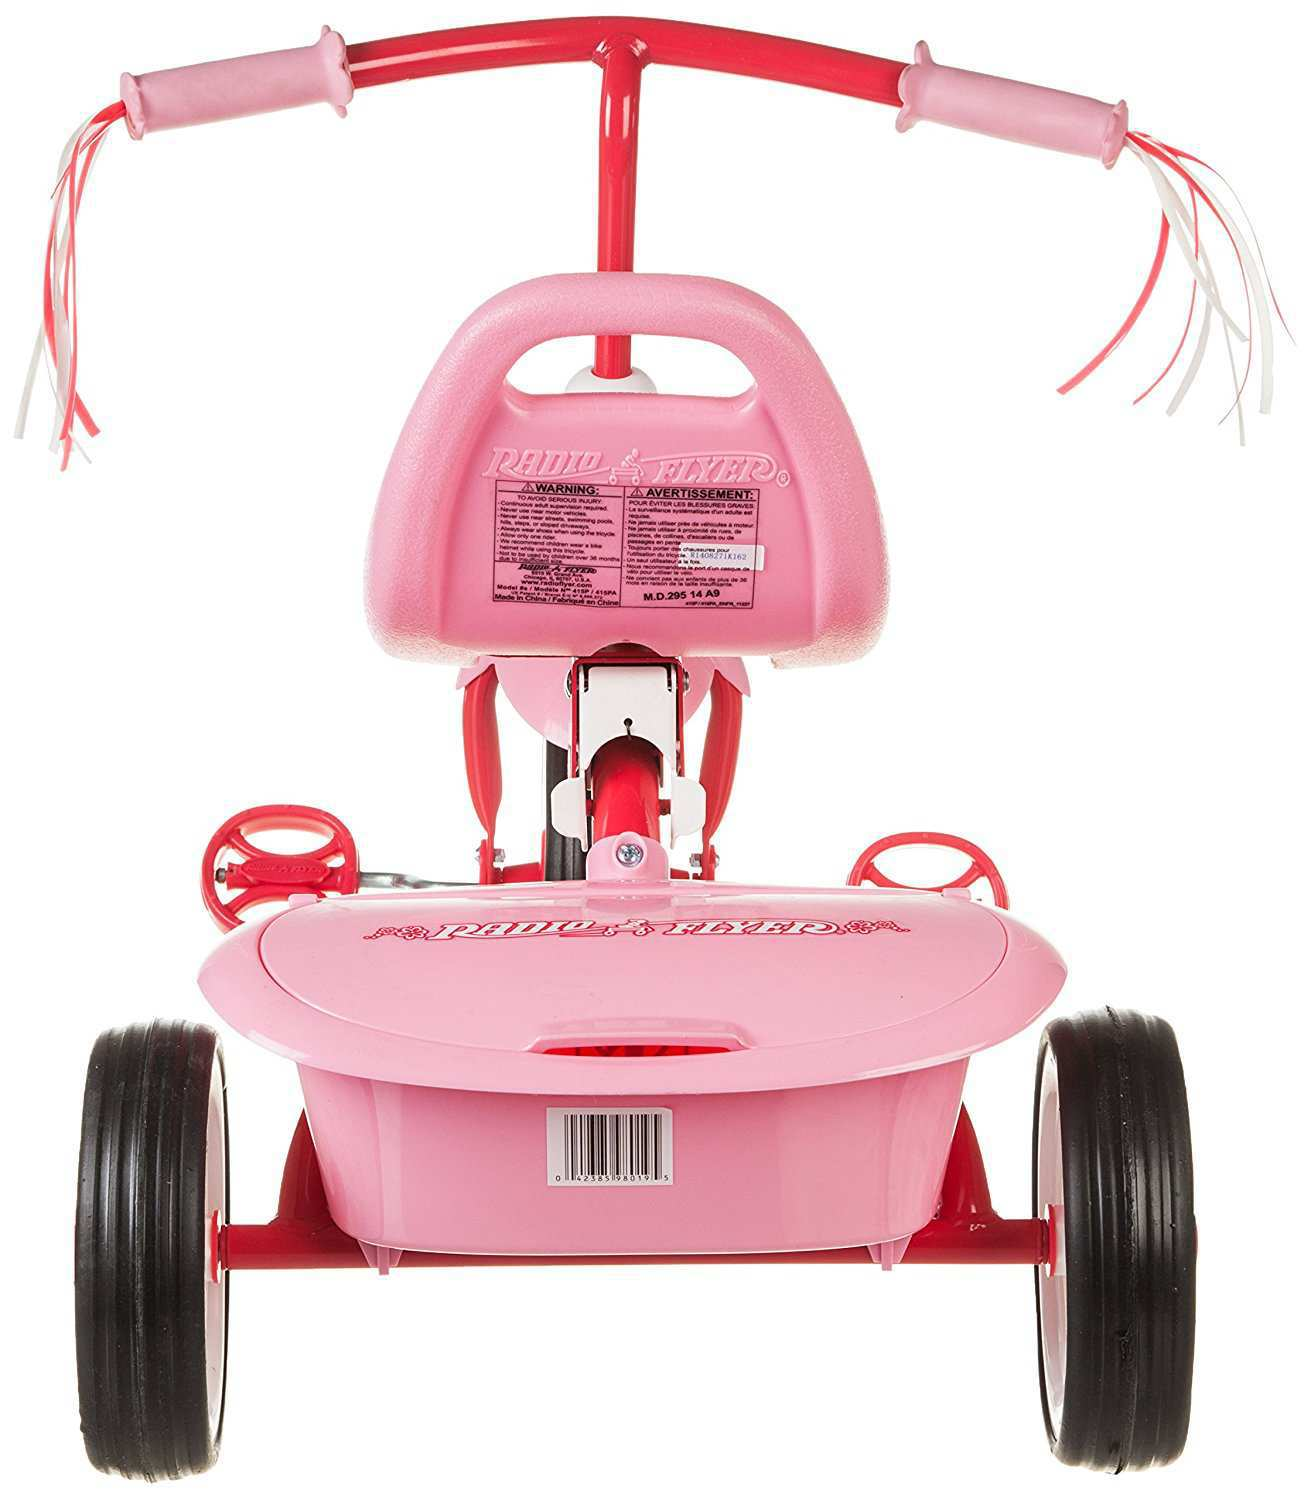 triciclo plegable rosa radio flyer-3